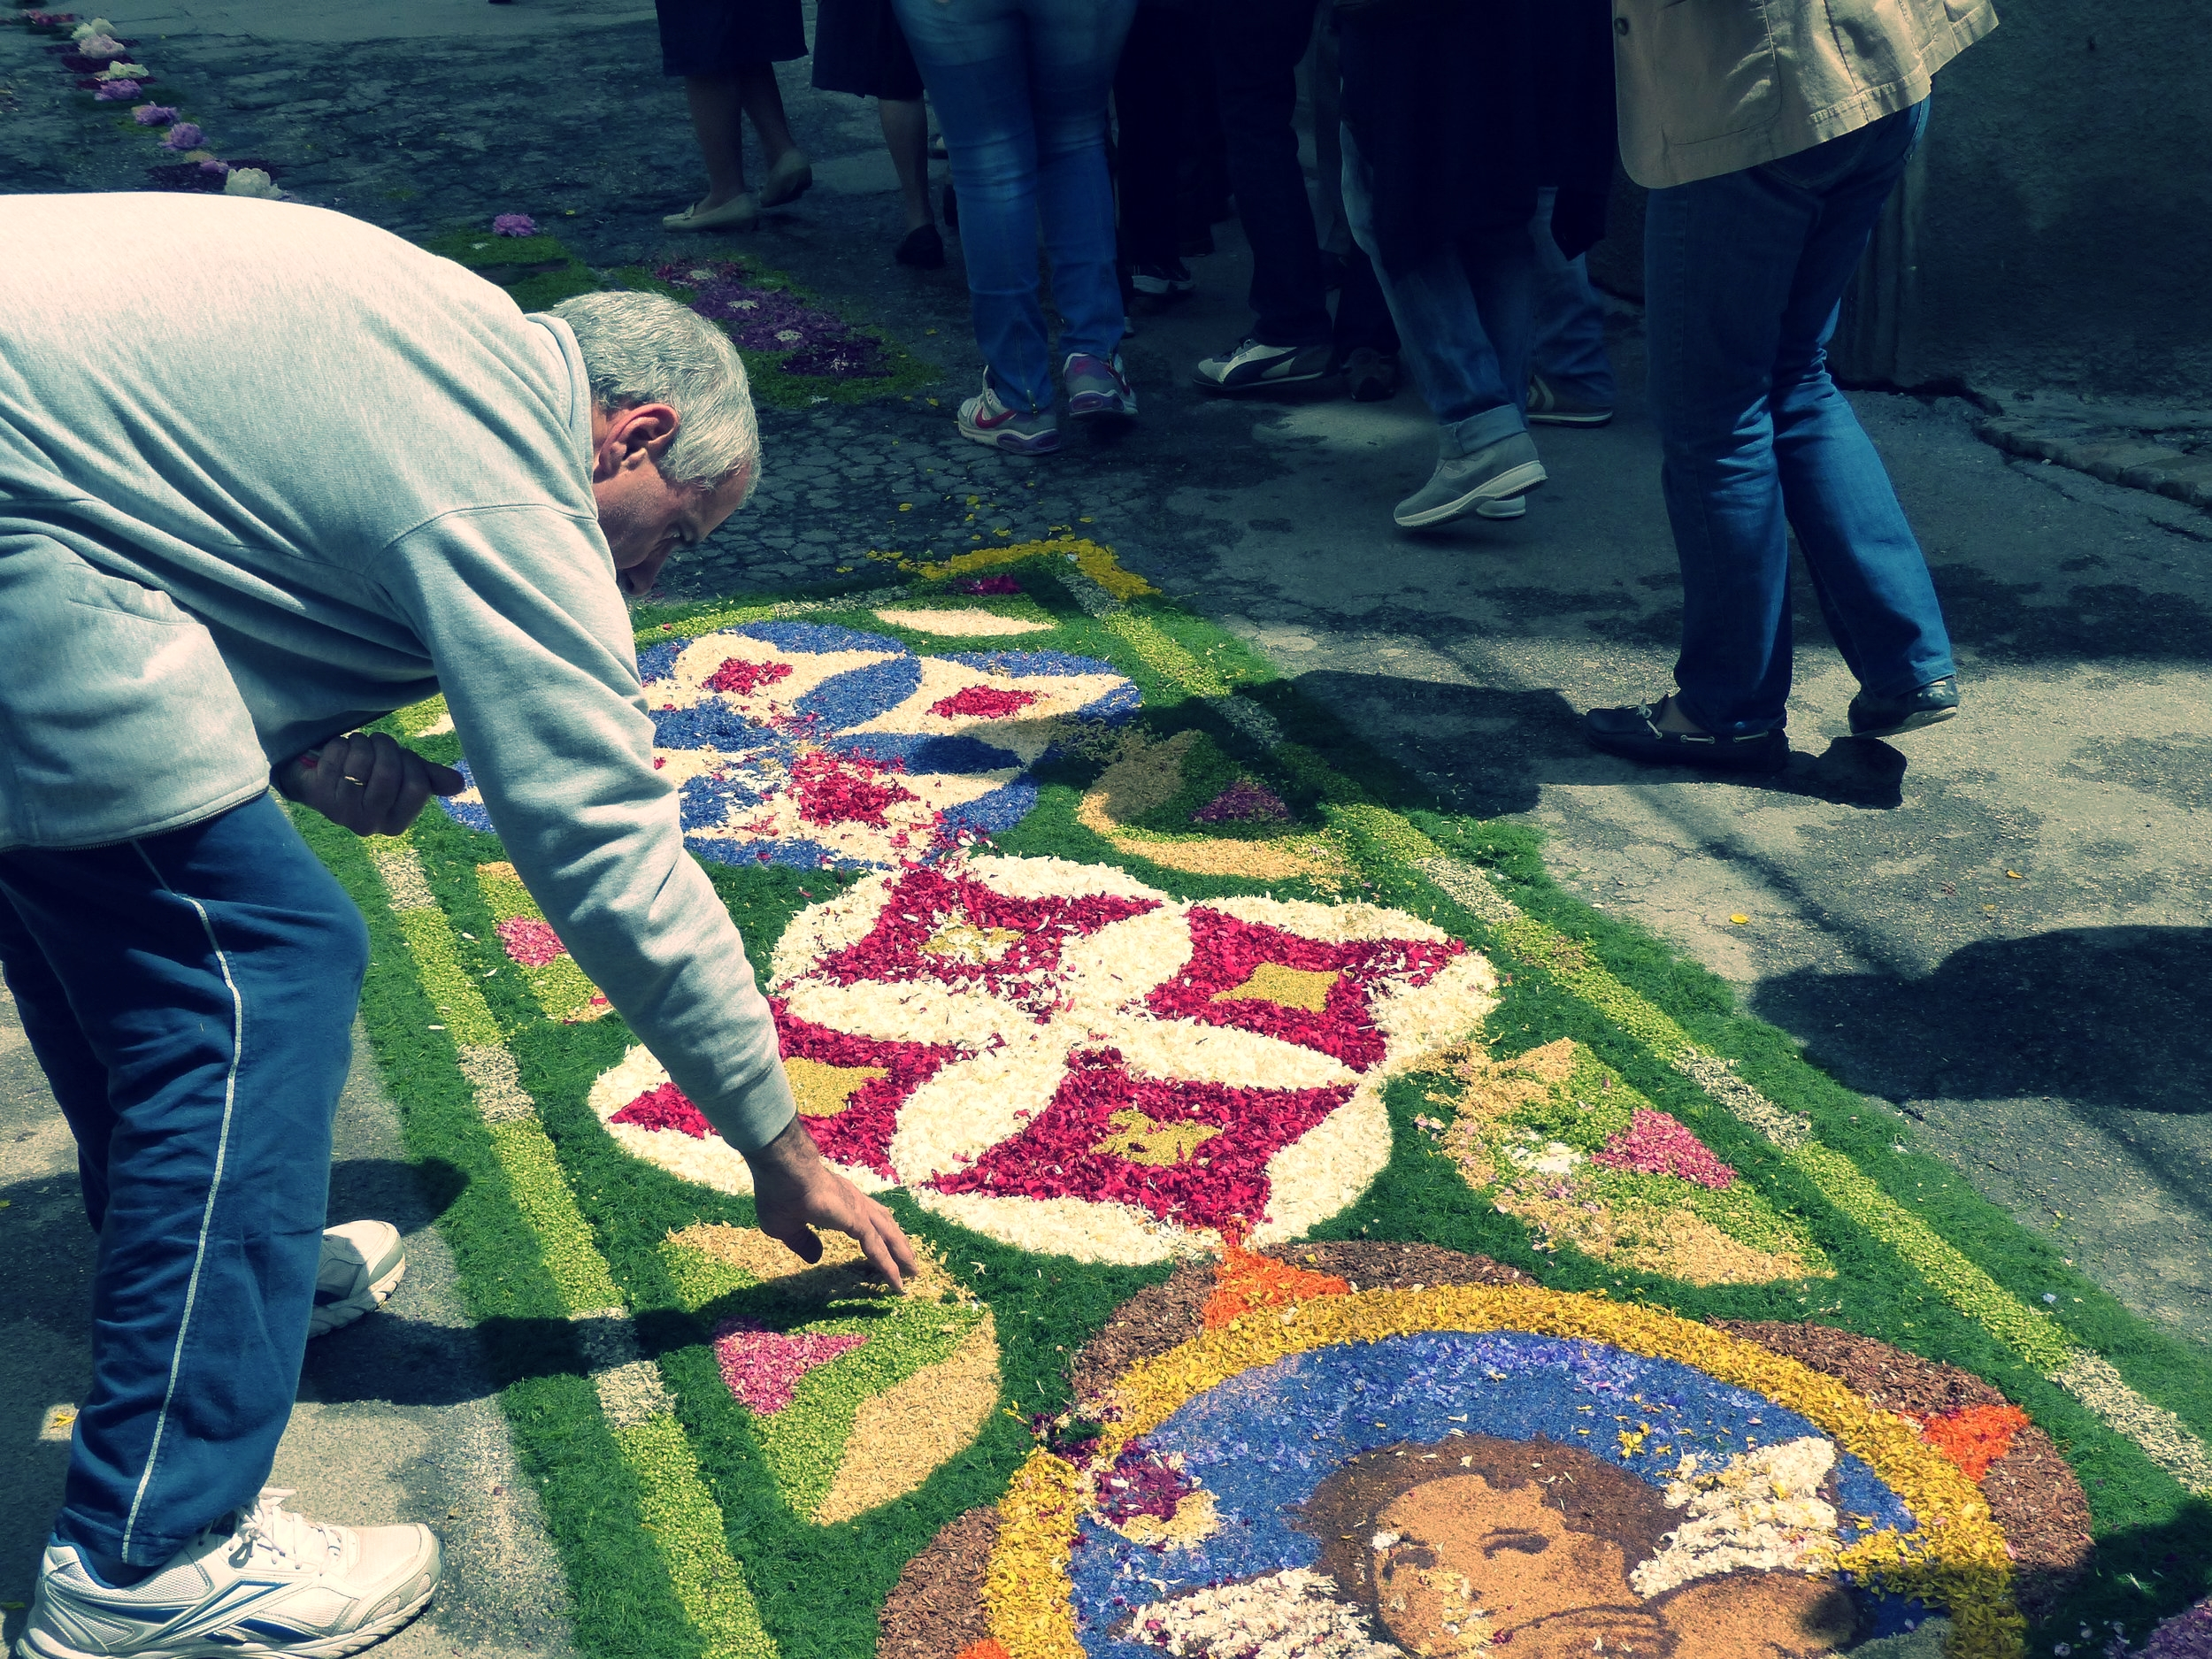 Fixing the flower carpet after Infiorata procession in Spello, Umbria